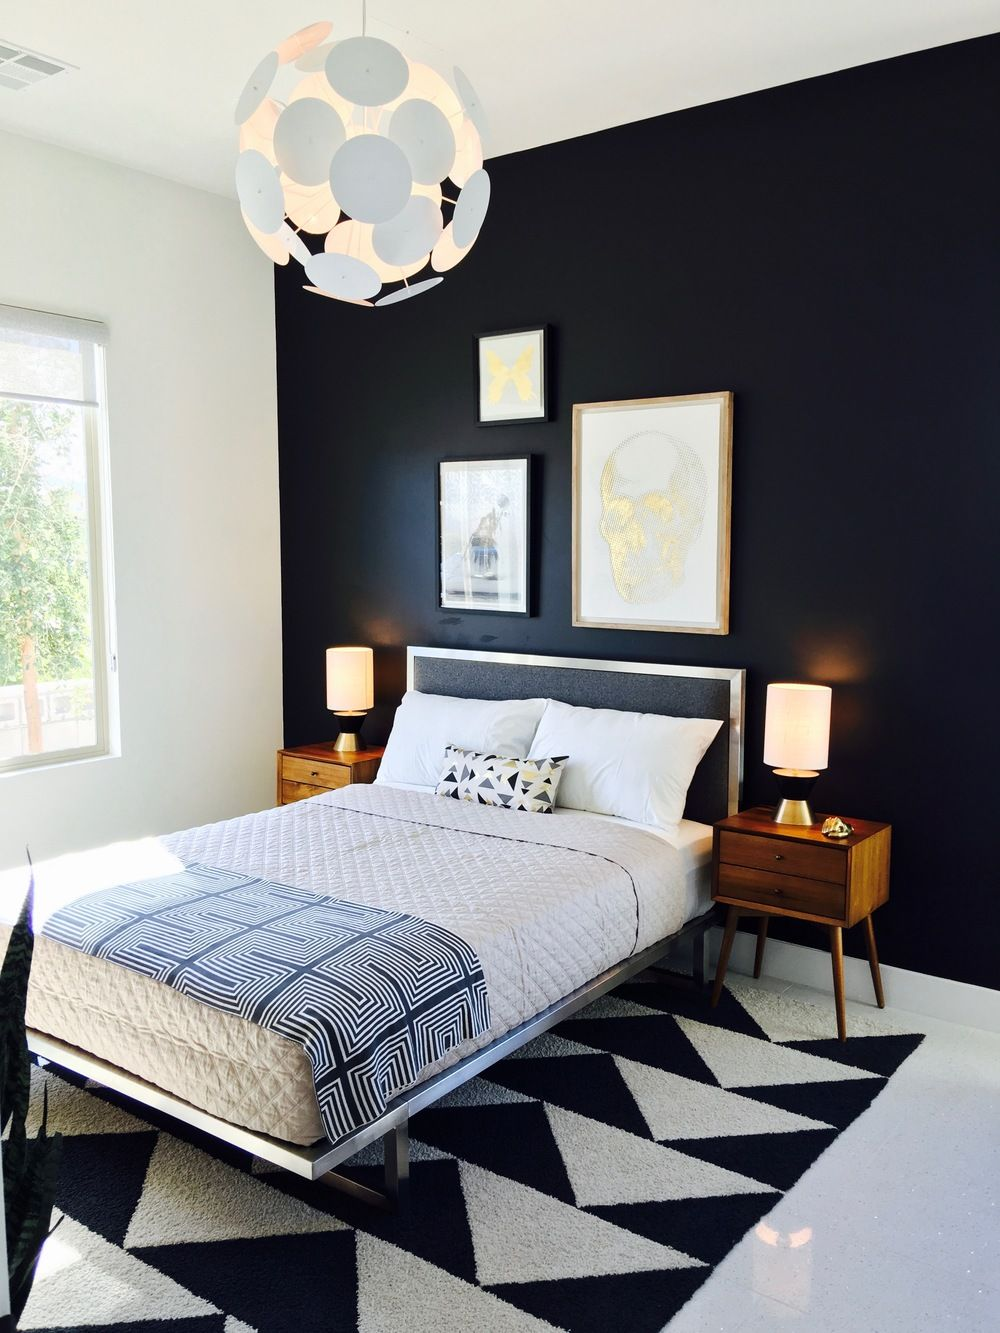 modern bedroom mid century bedroom black and white bedroom flor tiles austin bedroom. Black Bedroom Furniture Sets. Home Design Ideas